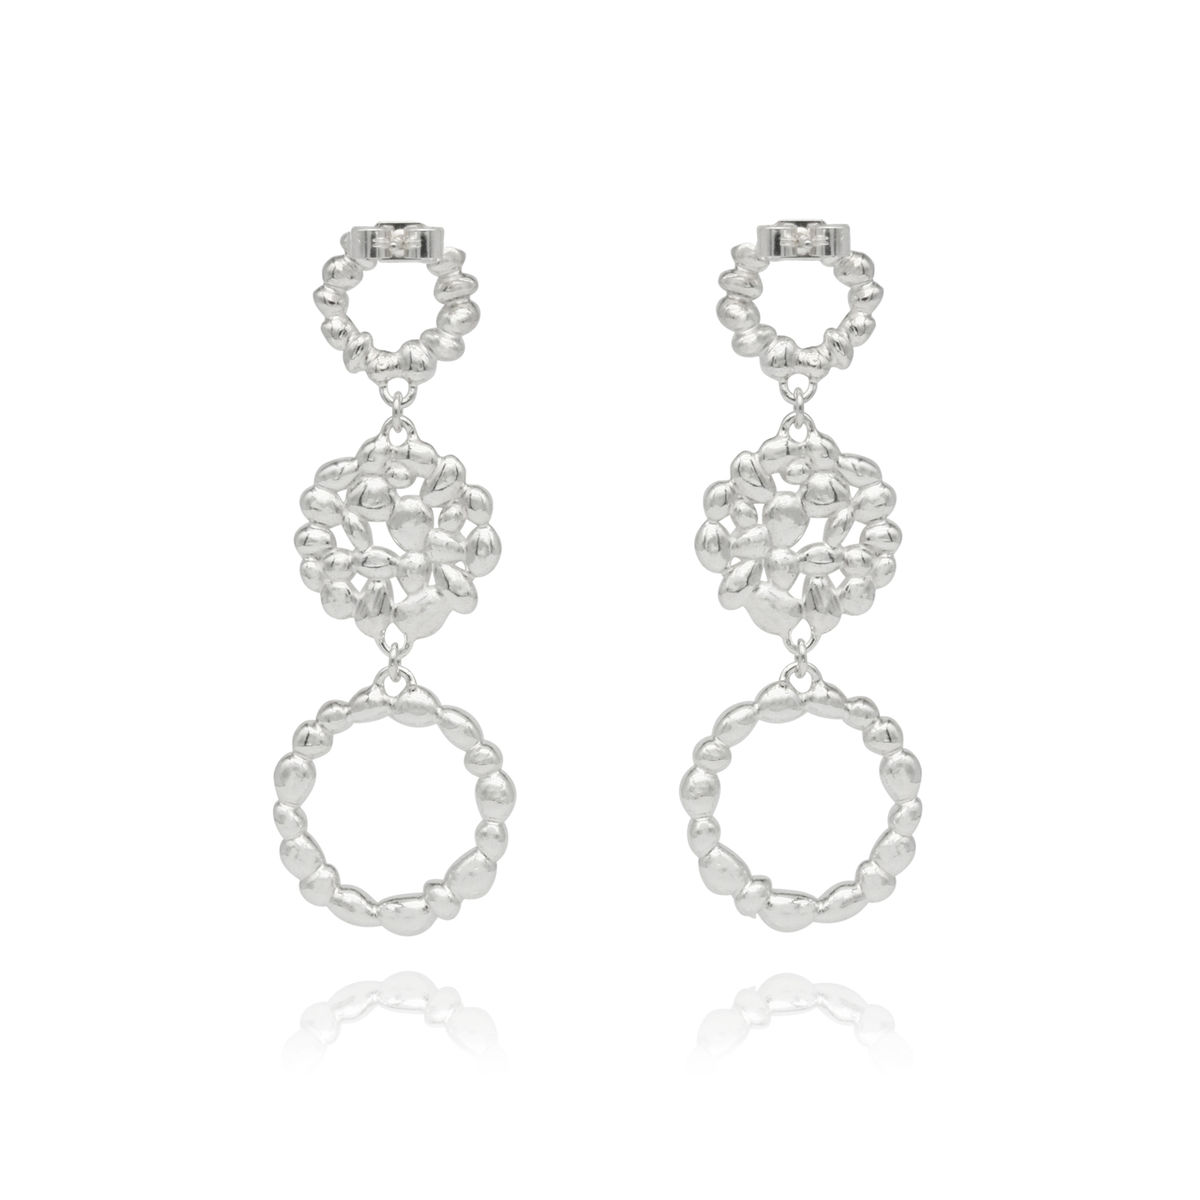 SHIMMER triple drop earrings - sterling silver - product images  of